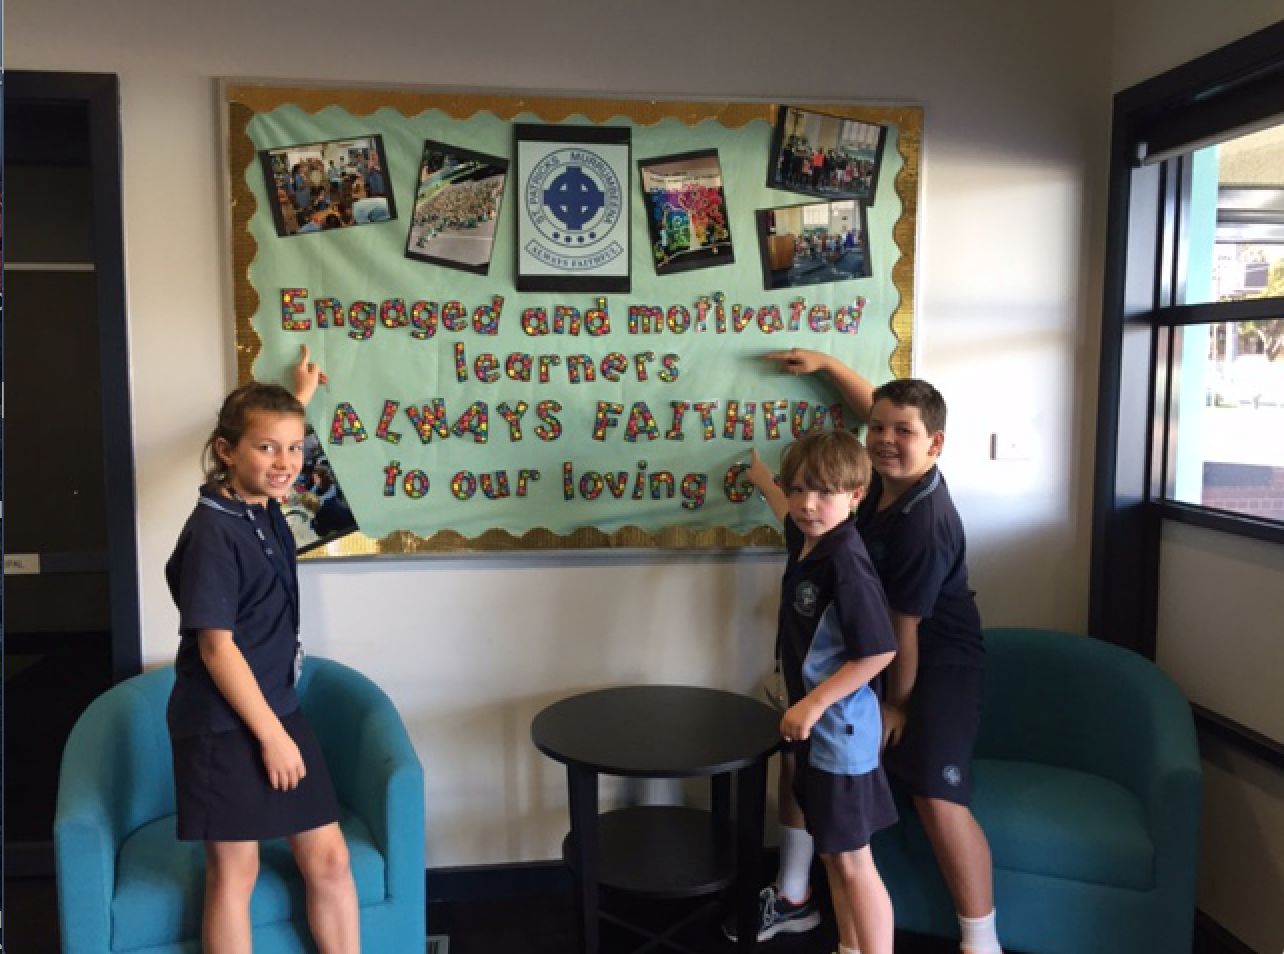 engaged and motivated learners